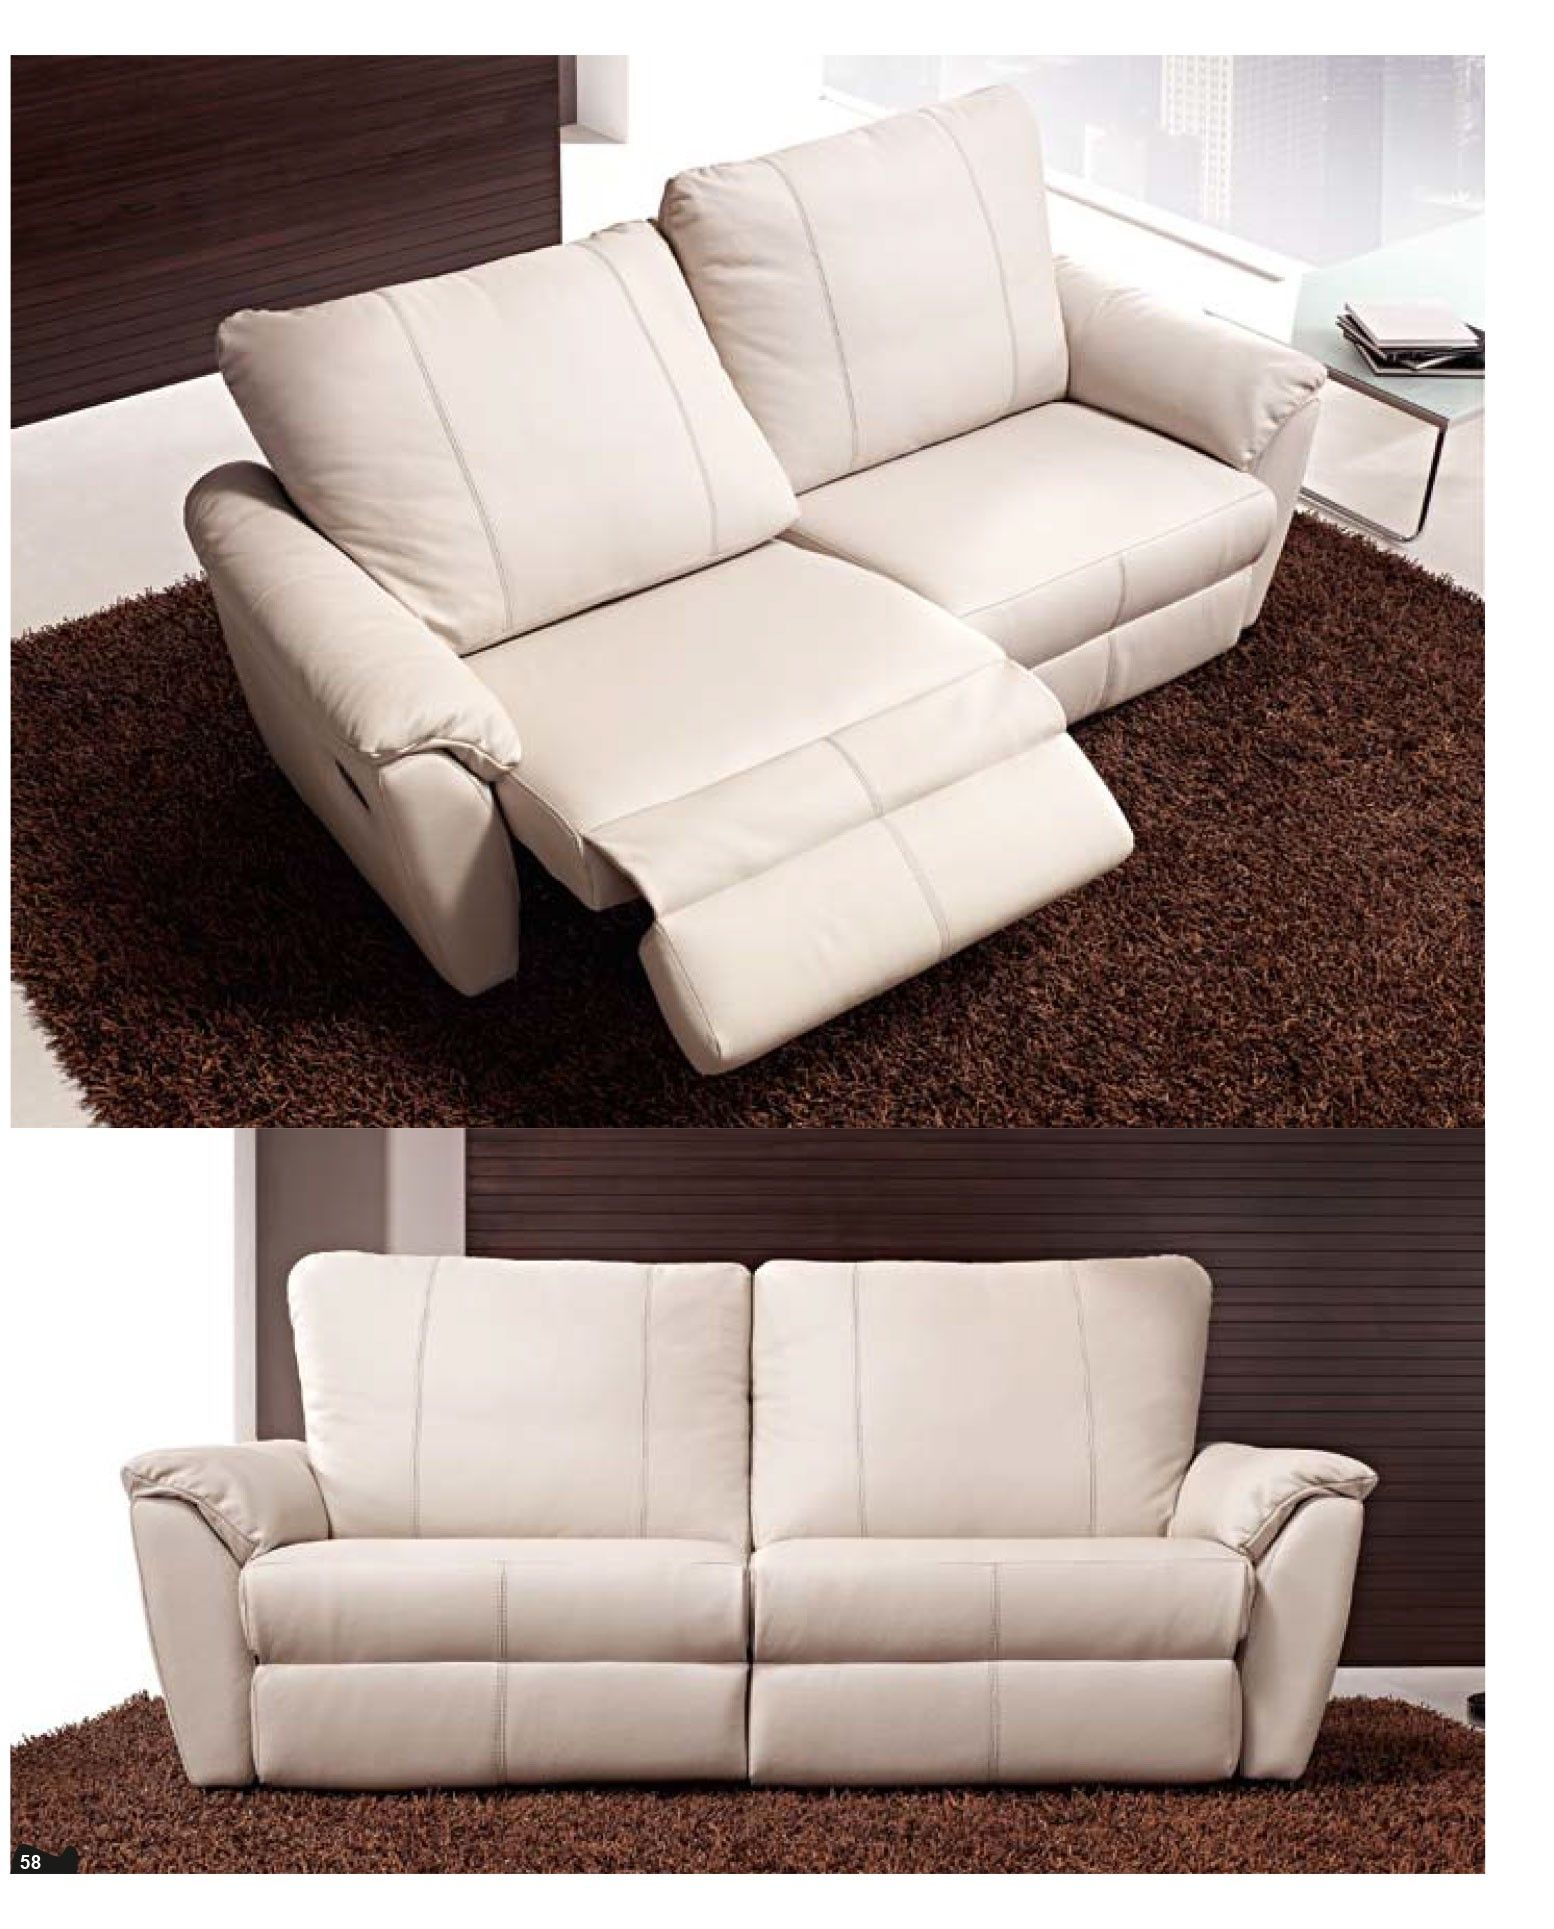 htl store modern reclining browse products fresno madera m loveseat sofas